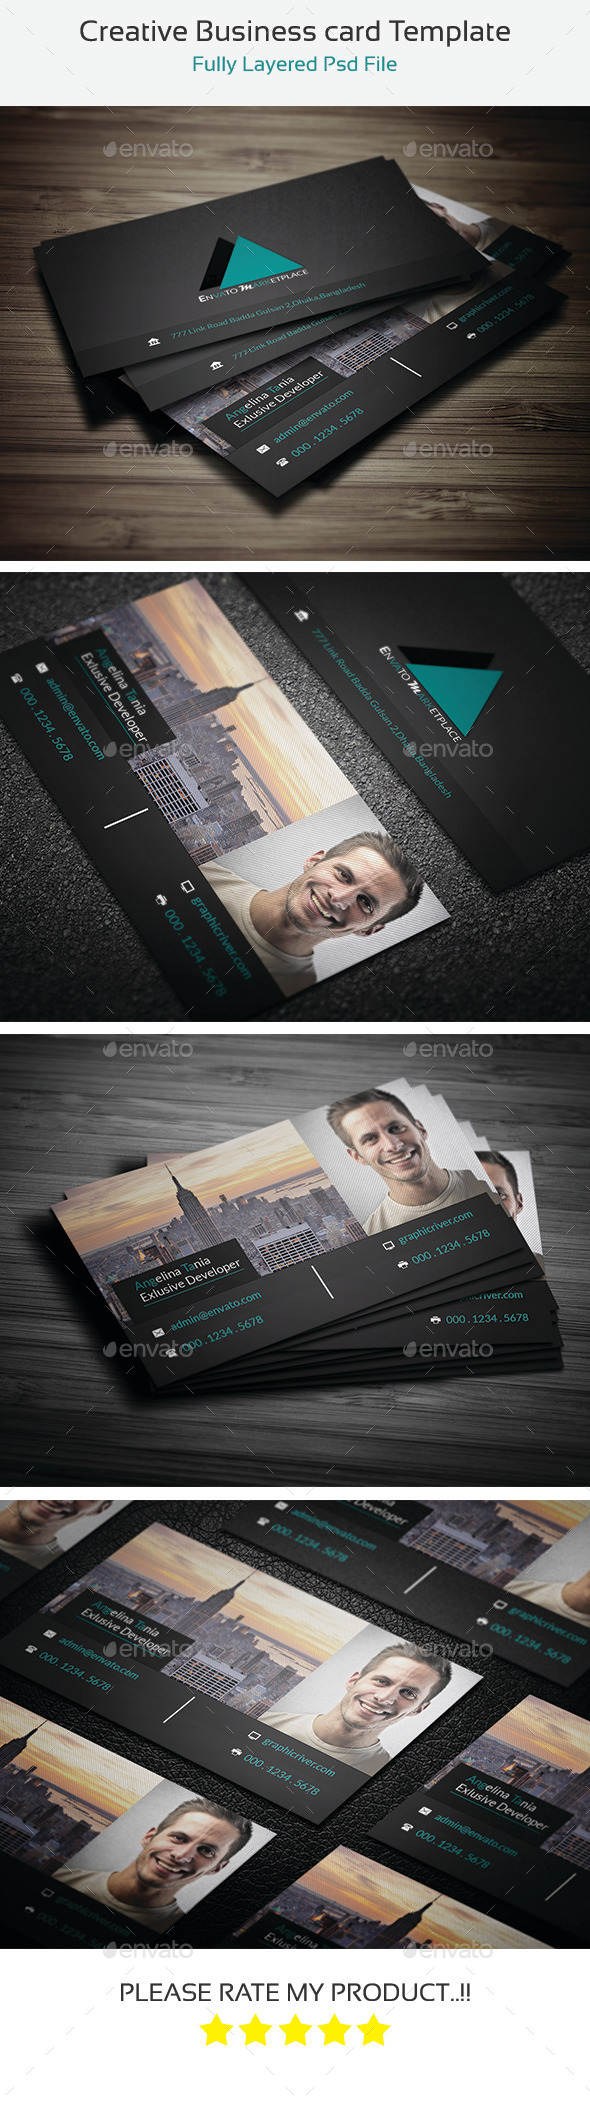 Creative Business Cards Template - Retro/Vintage Business Cards